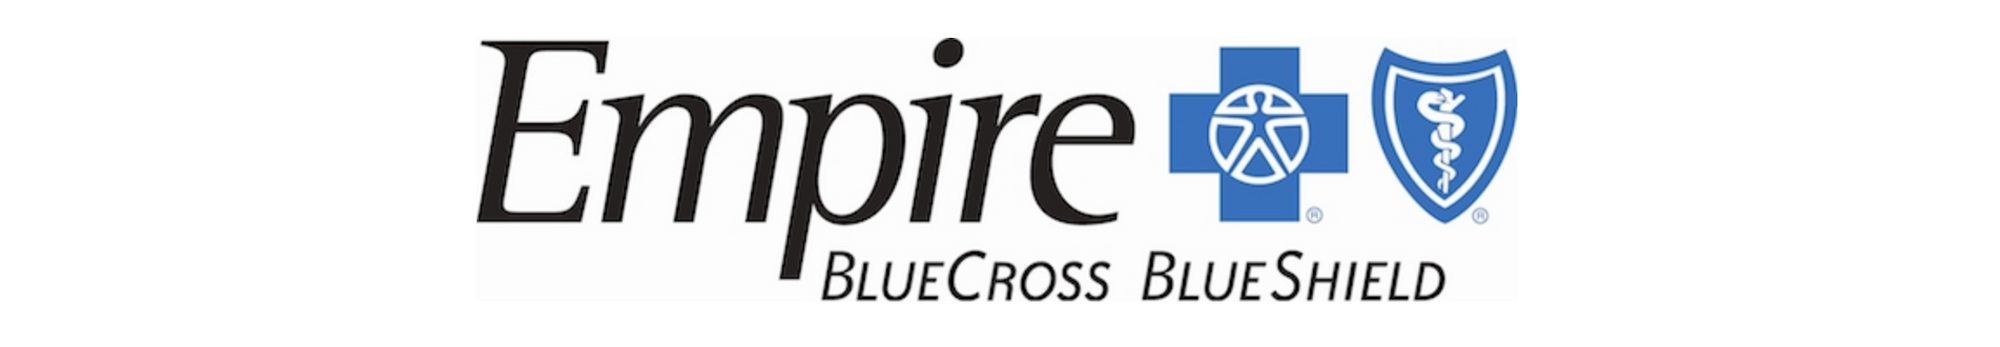 empire-blue-cross-blue-shield